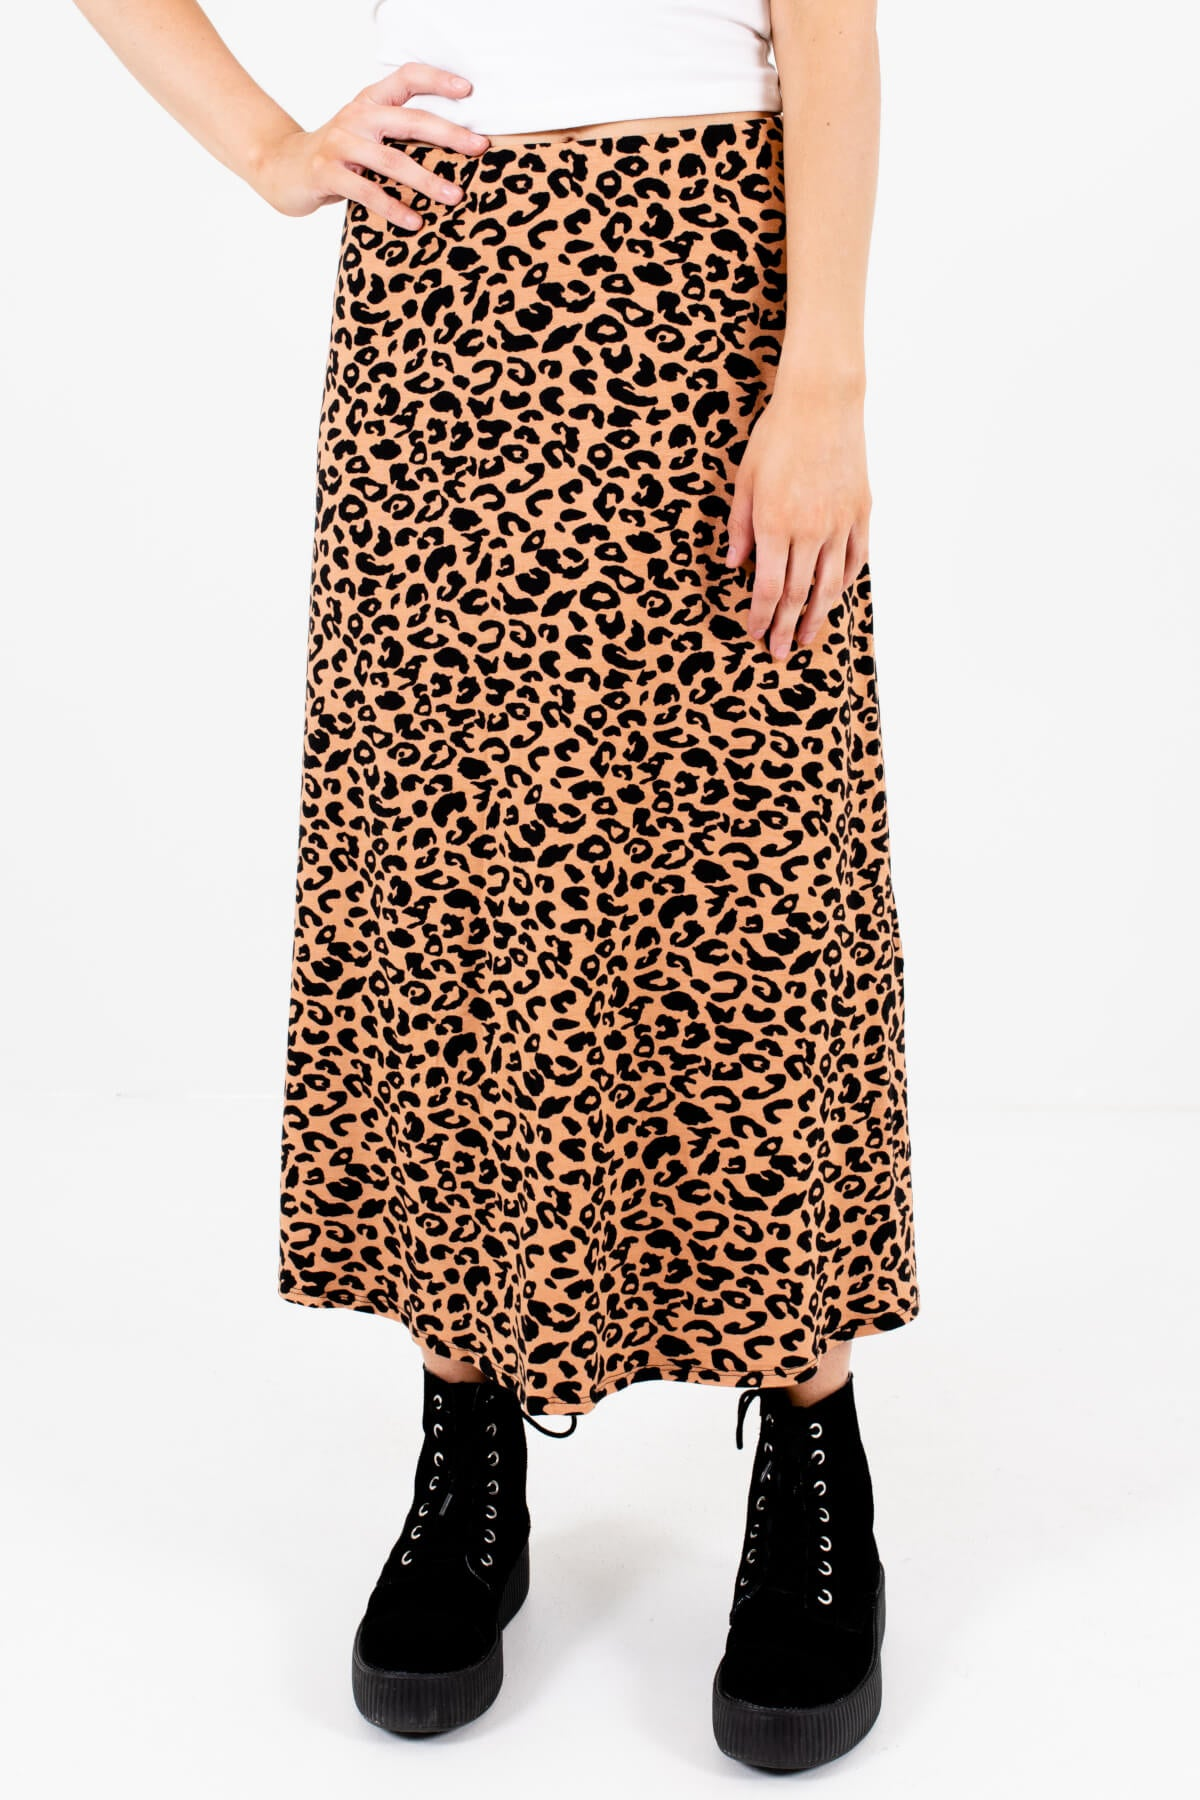 Brown and Black Leopard Print Pattern Boutique Midi Skirts for Women